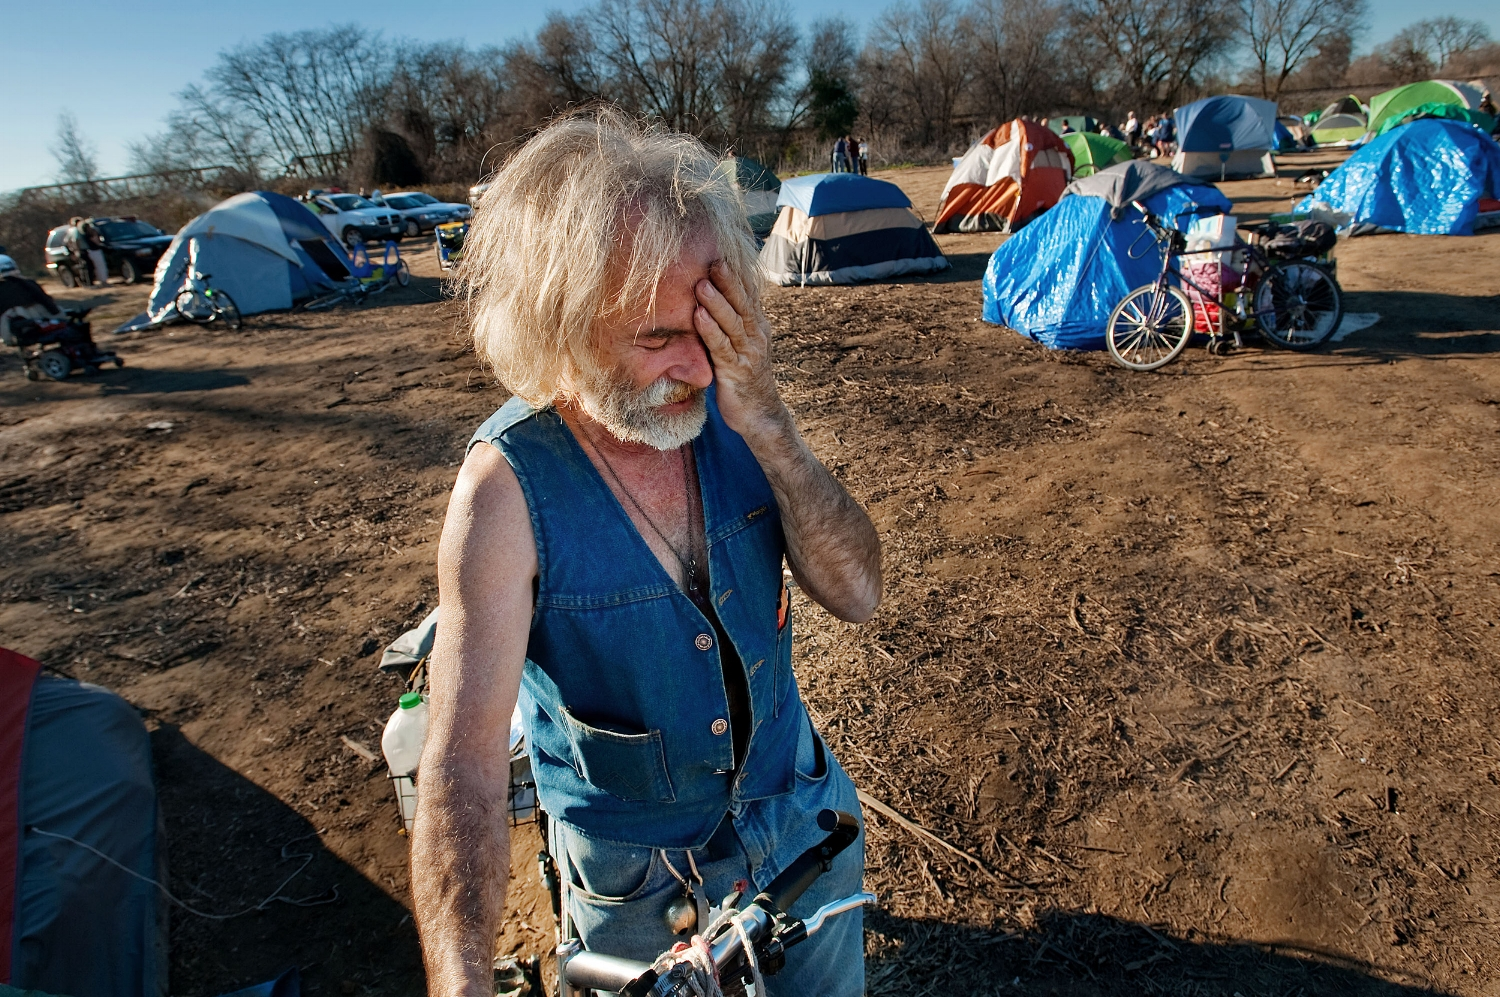 """Homeless camper Tim Buckley at the former """"SafeGround' encampment along the American River Parkway in Sacramento on Wednesday, February 9, 2011. Authorities gave out notices to homeless campers along the river. What had been called a """"Safeground' for homeless campers is now being vacated, and campers were given 48 hours to move out, or be cited."""